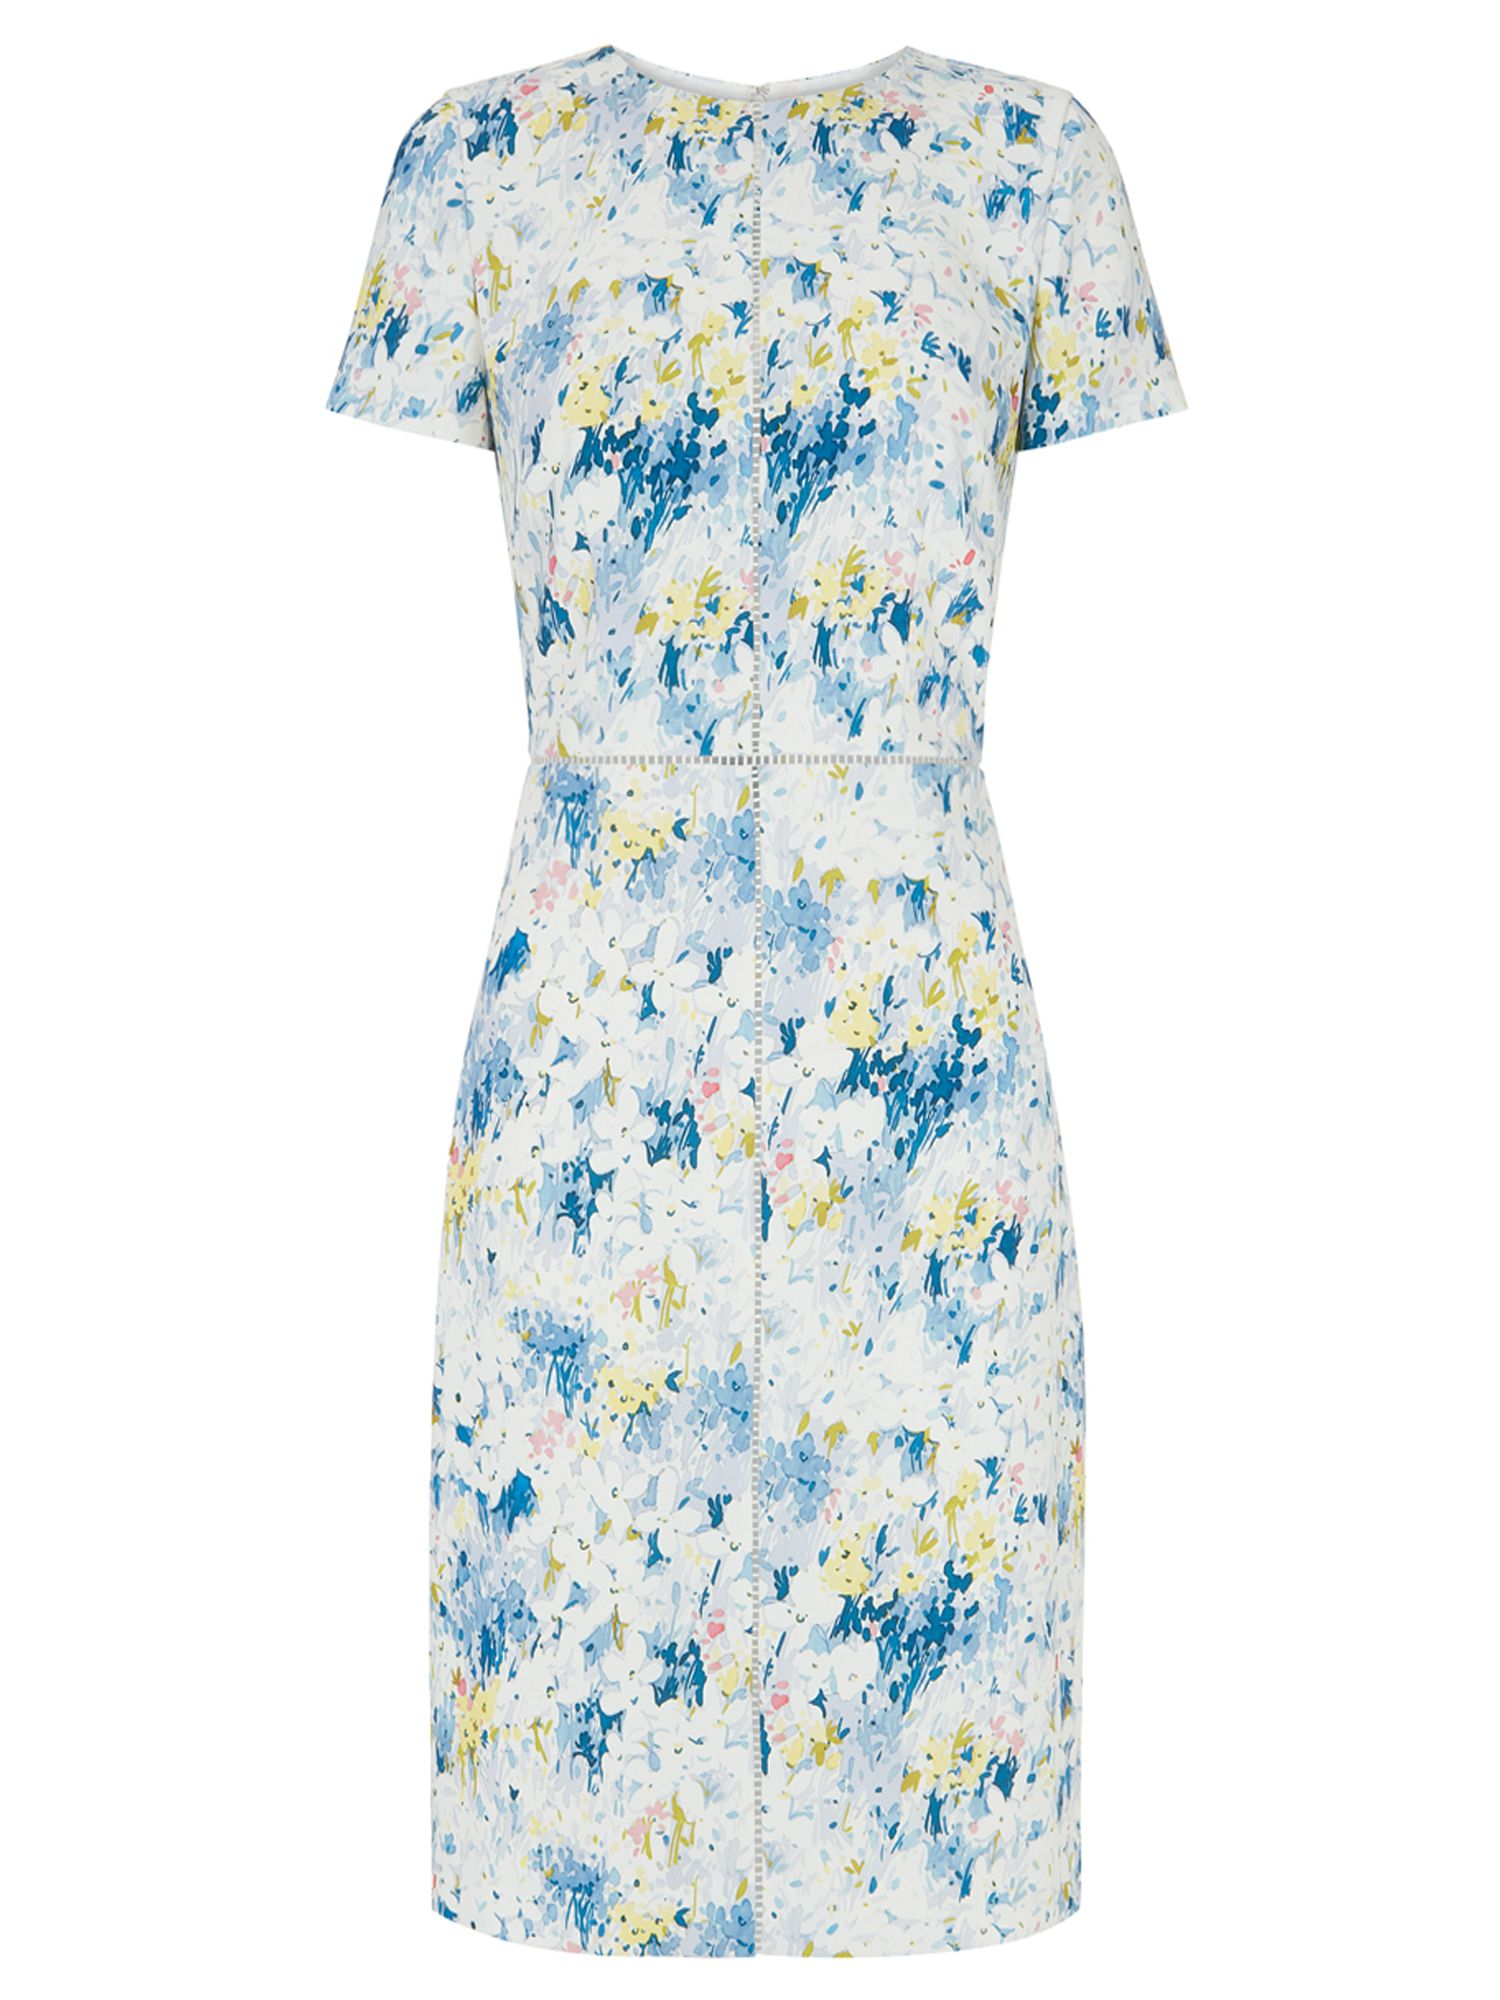 Hobbs Alaina Dress, Multi-Coloured